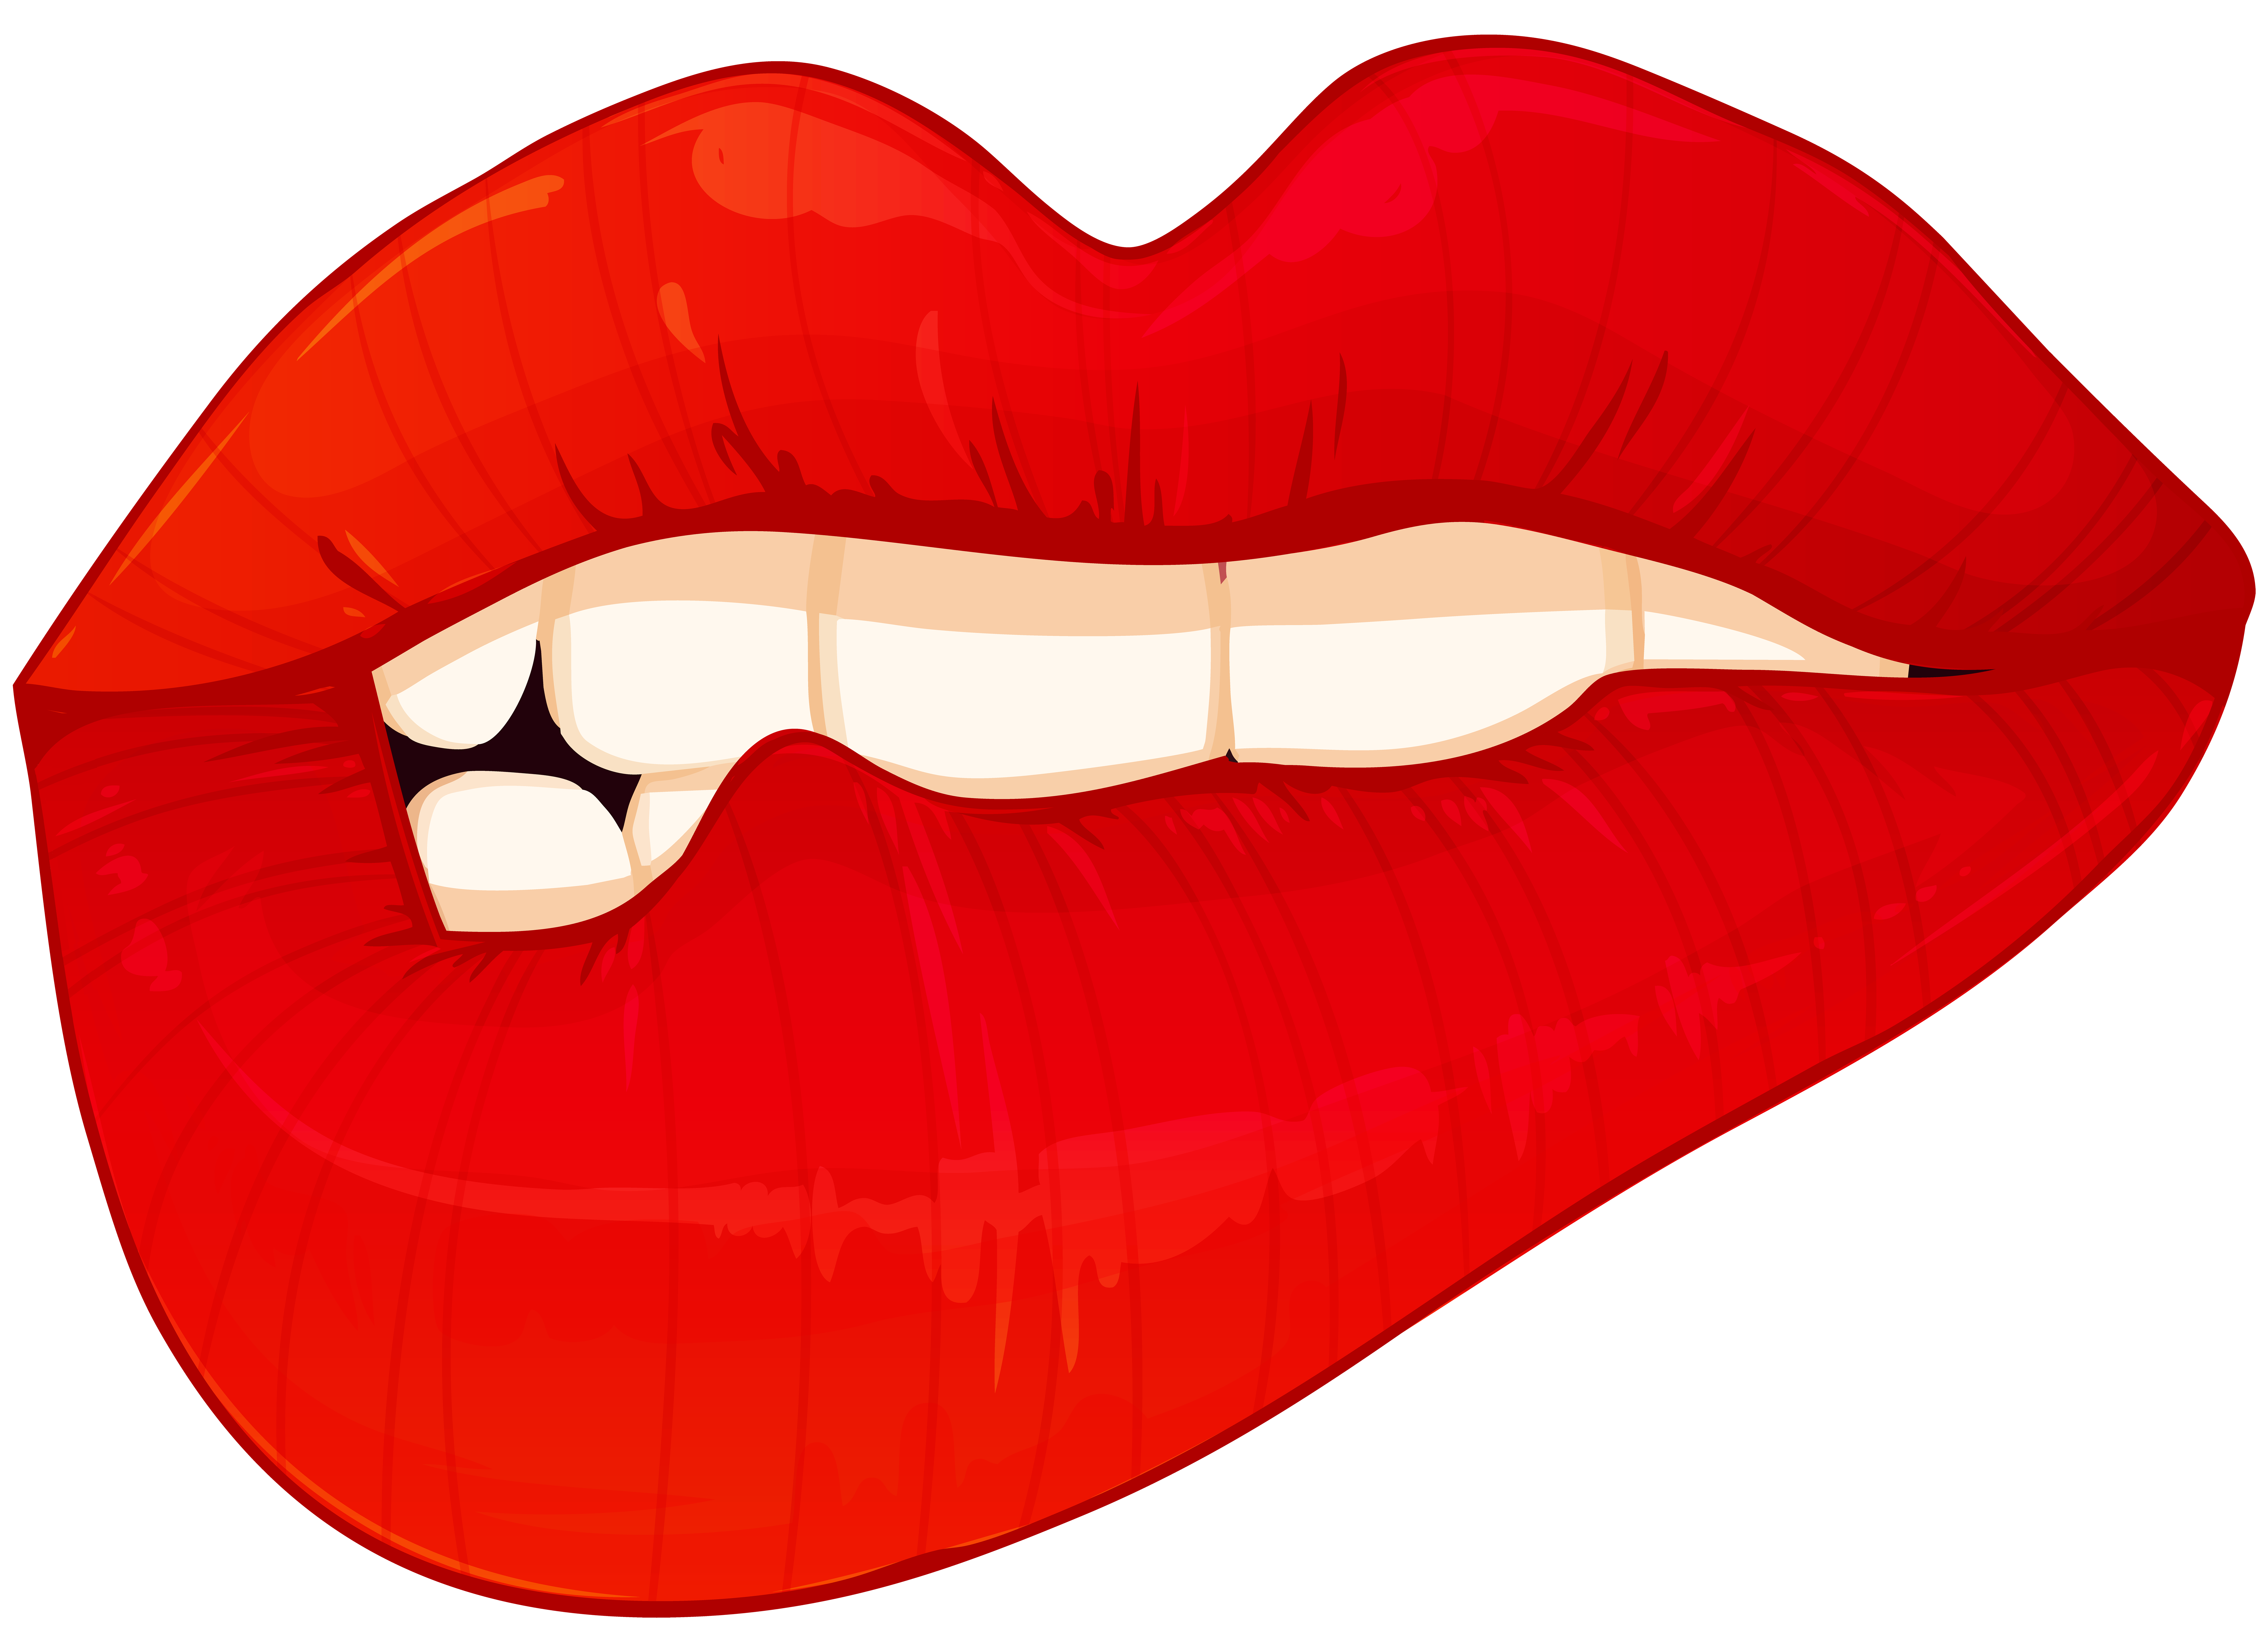 Vampire closed lips clipart transparent library Vampire Lips Drawing | Free download best Vampire Lips ... transparent library